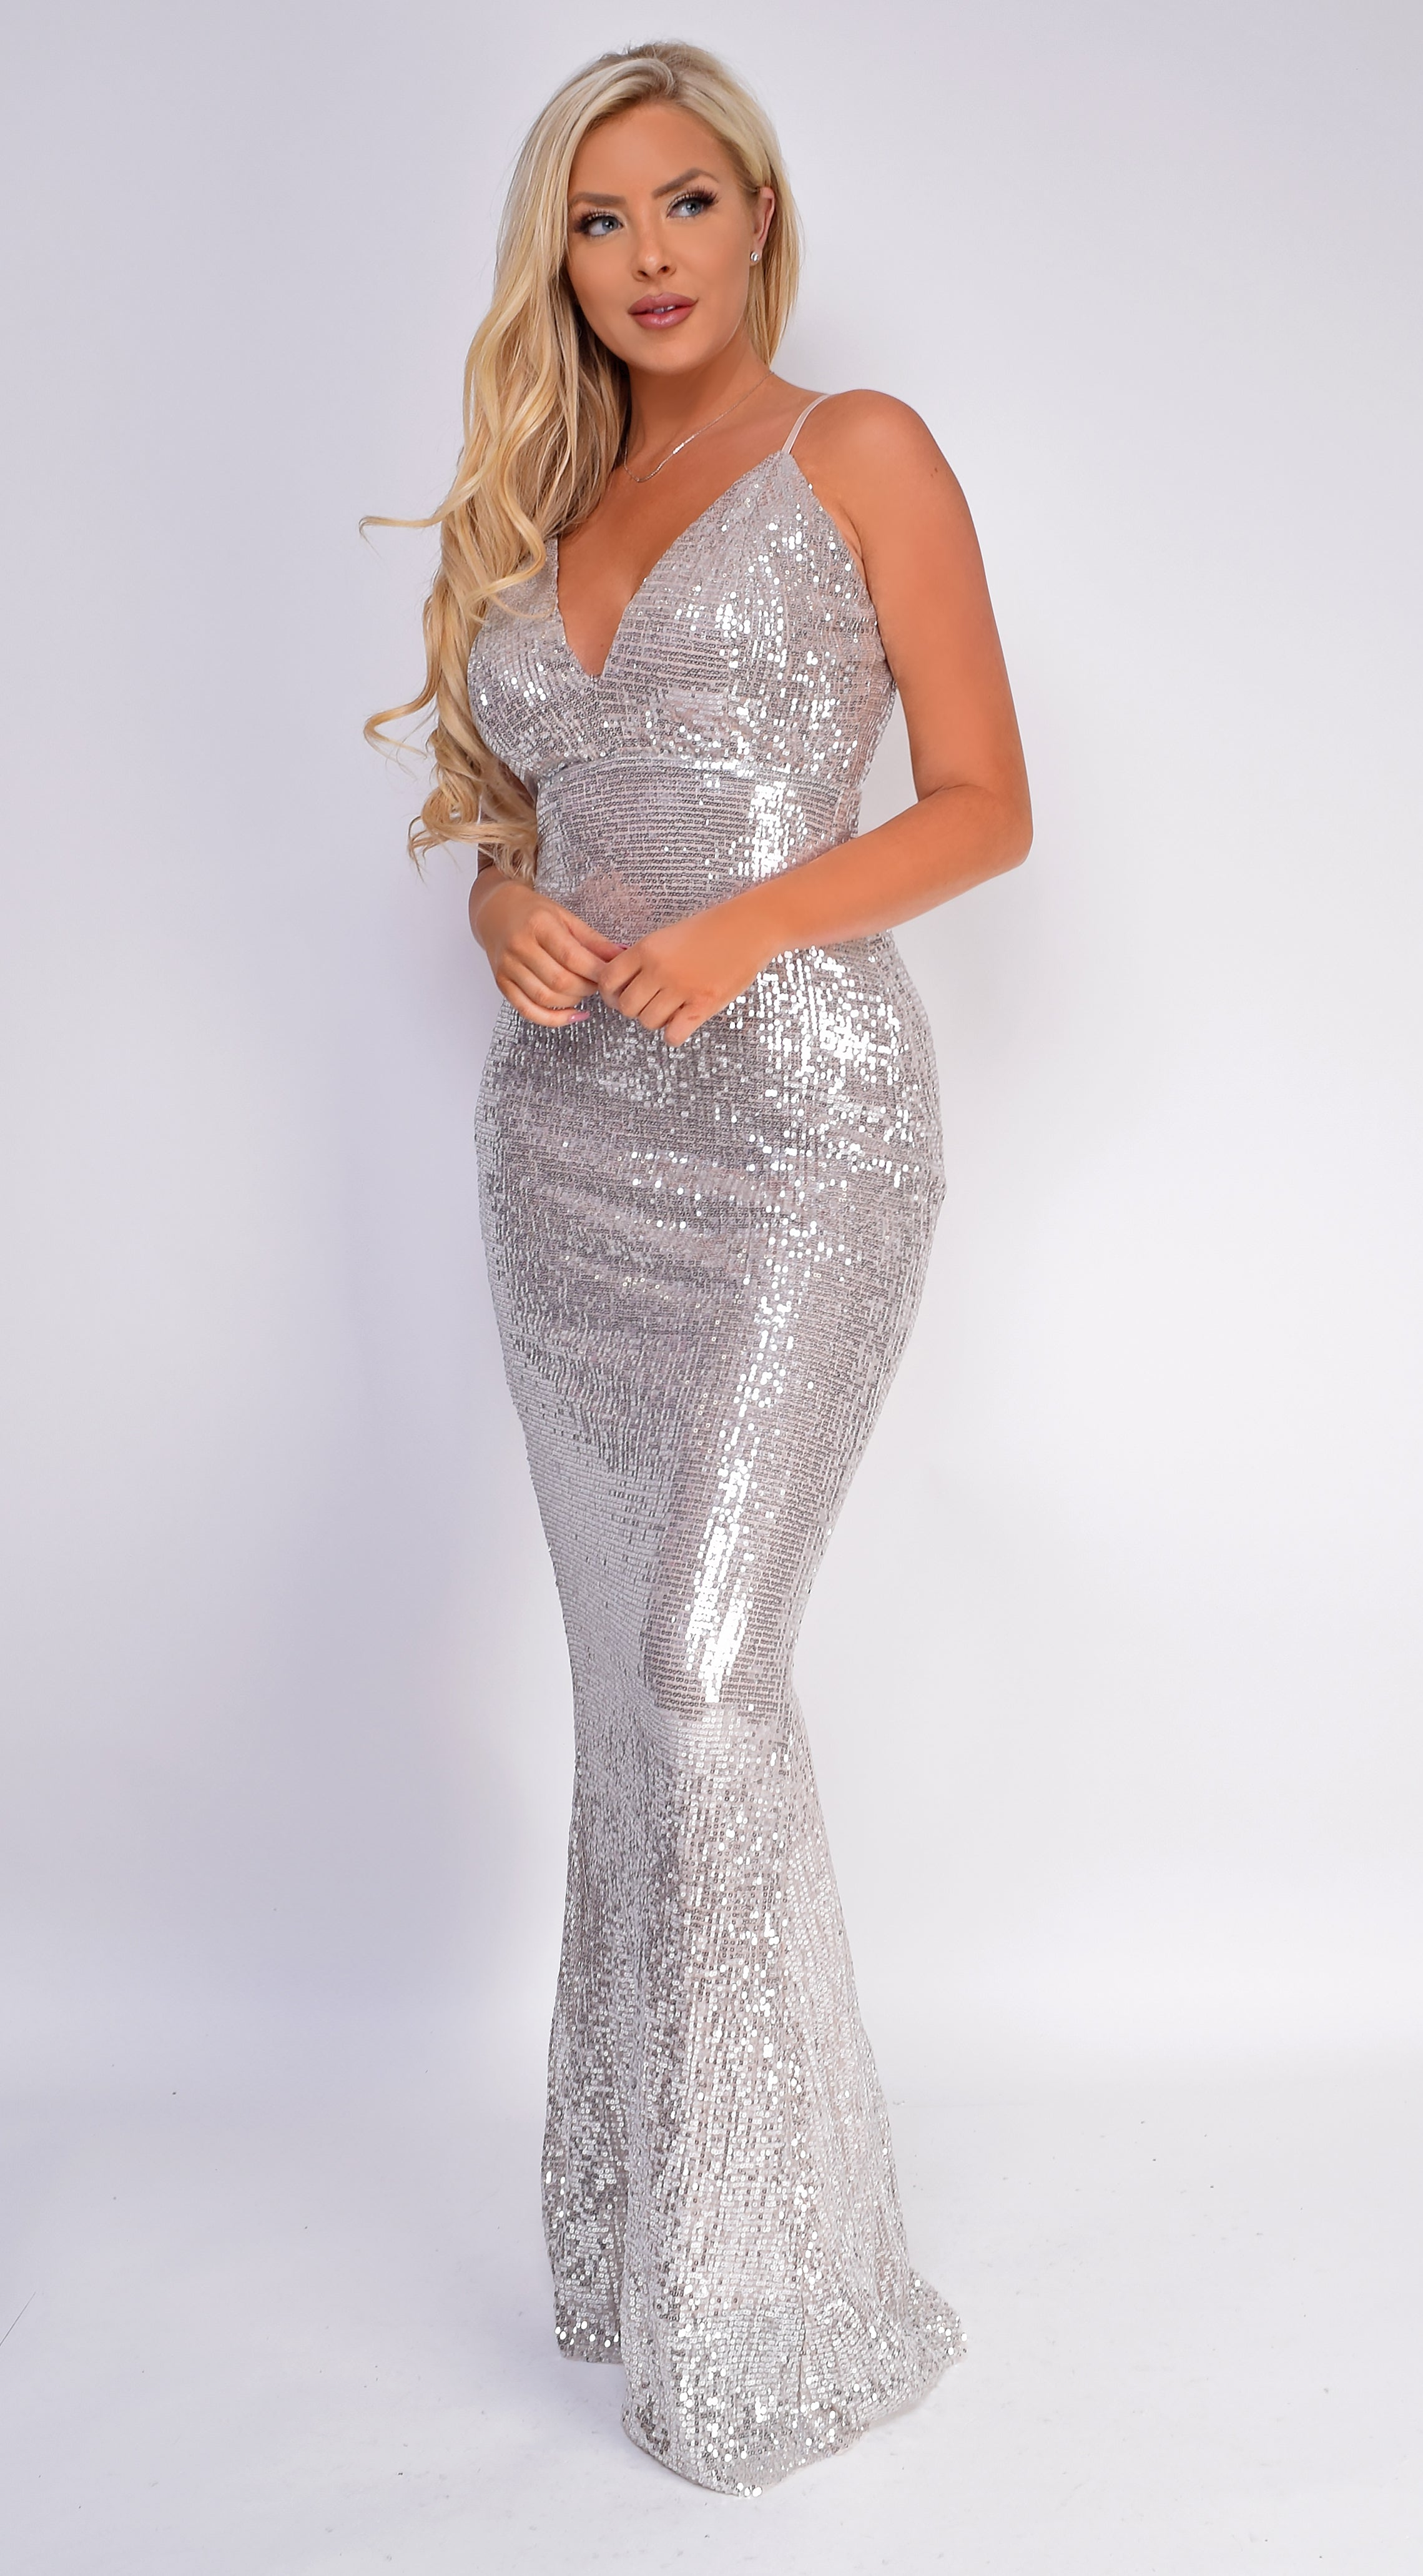 Isidra Silver Sequin Gown